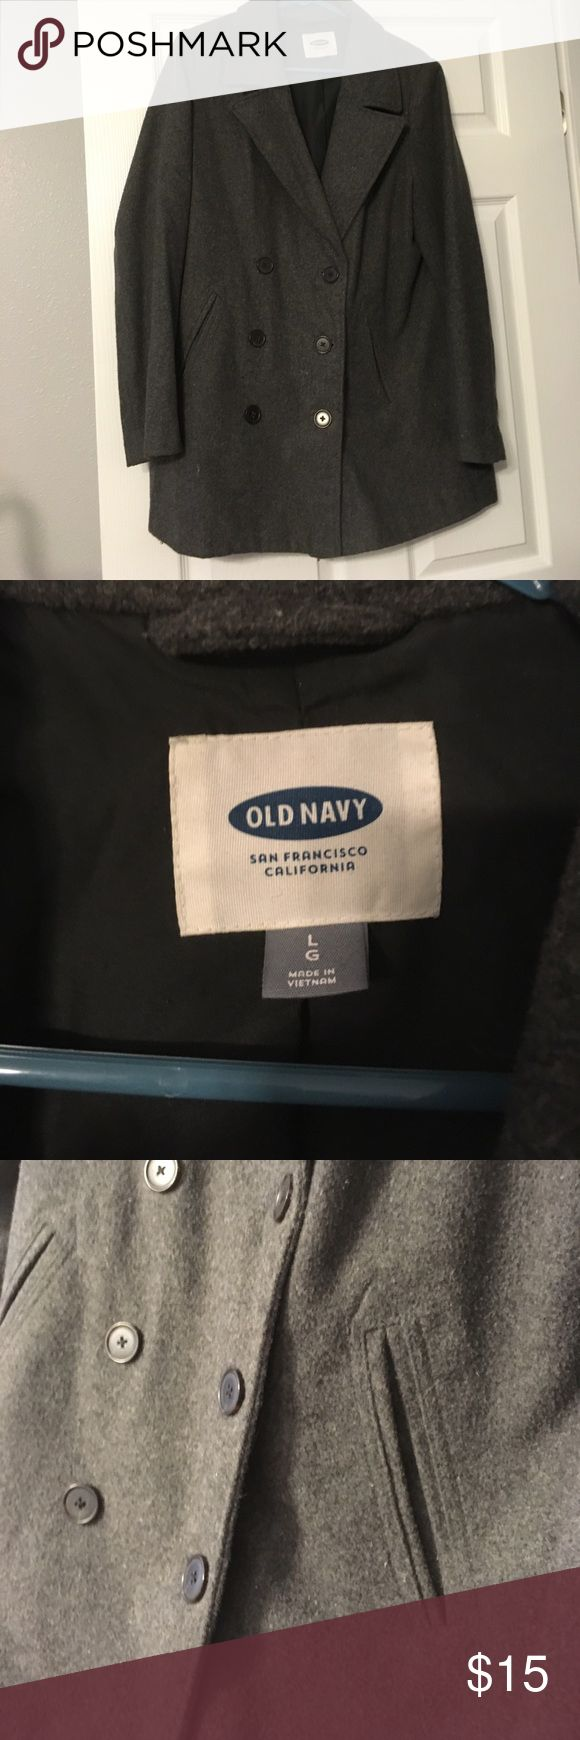 Old Navy light weight peacoat Classic wool pea-coat. Great for spring/fall. Old Navy Jackets & Coats Pea Coats